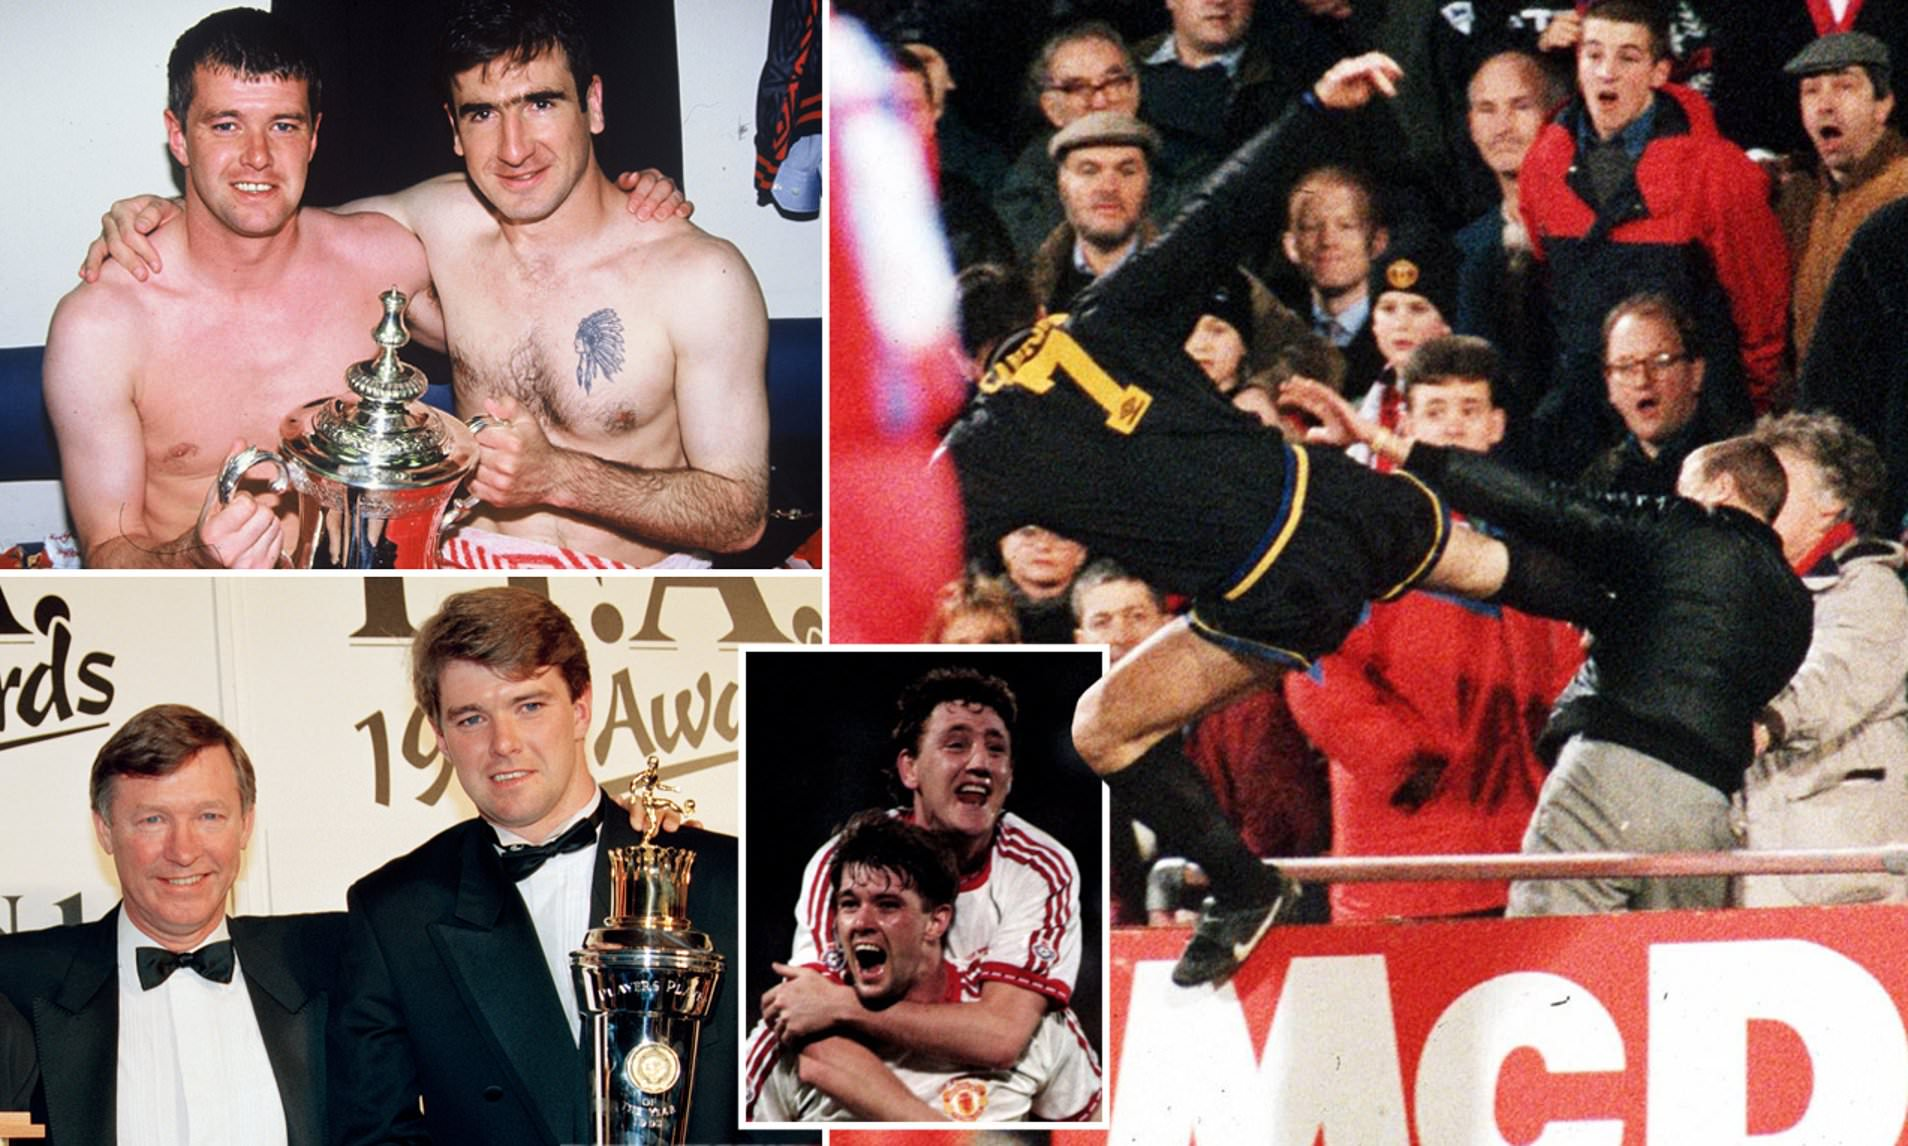 Eric cantona's kick, 25 years on: Gary Pallister Recalls What Sir Alex Ferguson Told Eric Cantona After His Kung Fu Kick Daily Mail Online